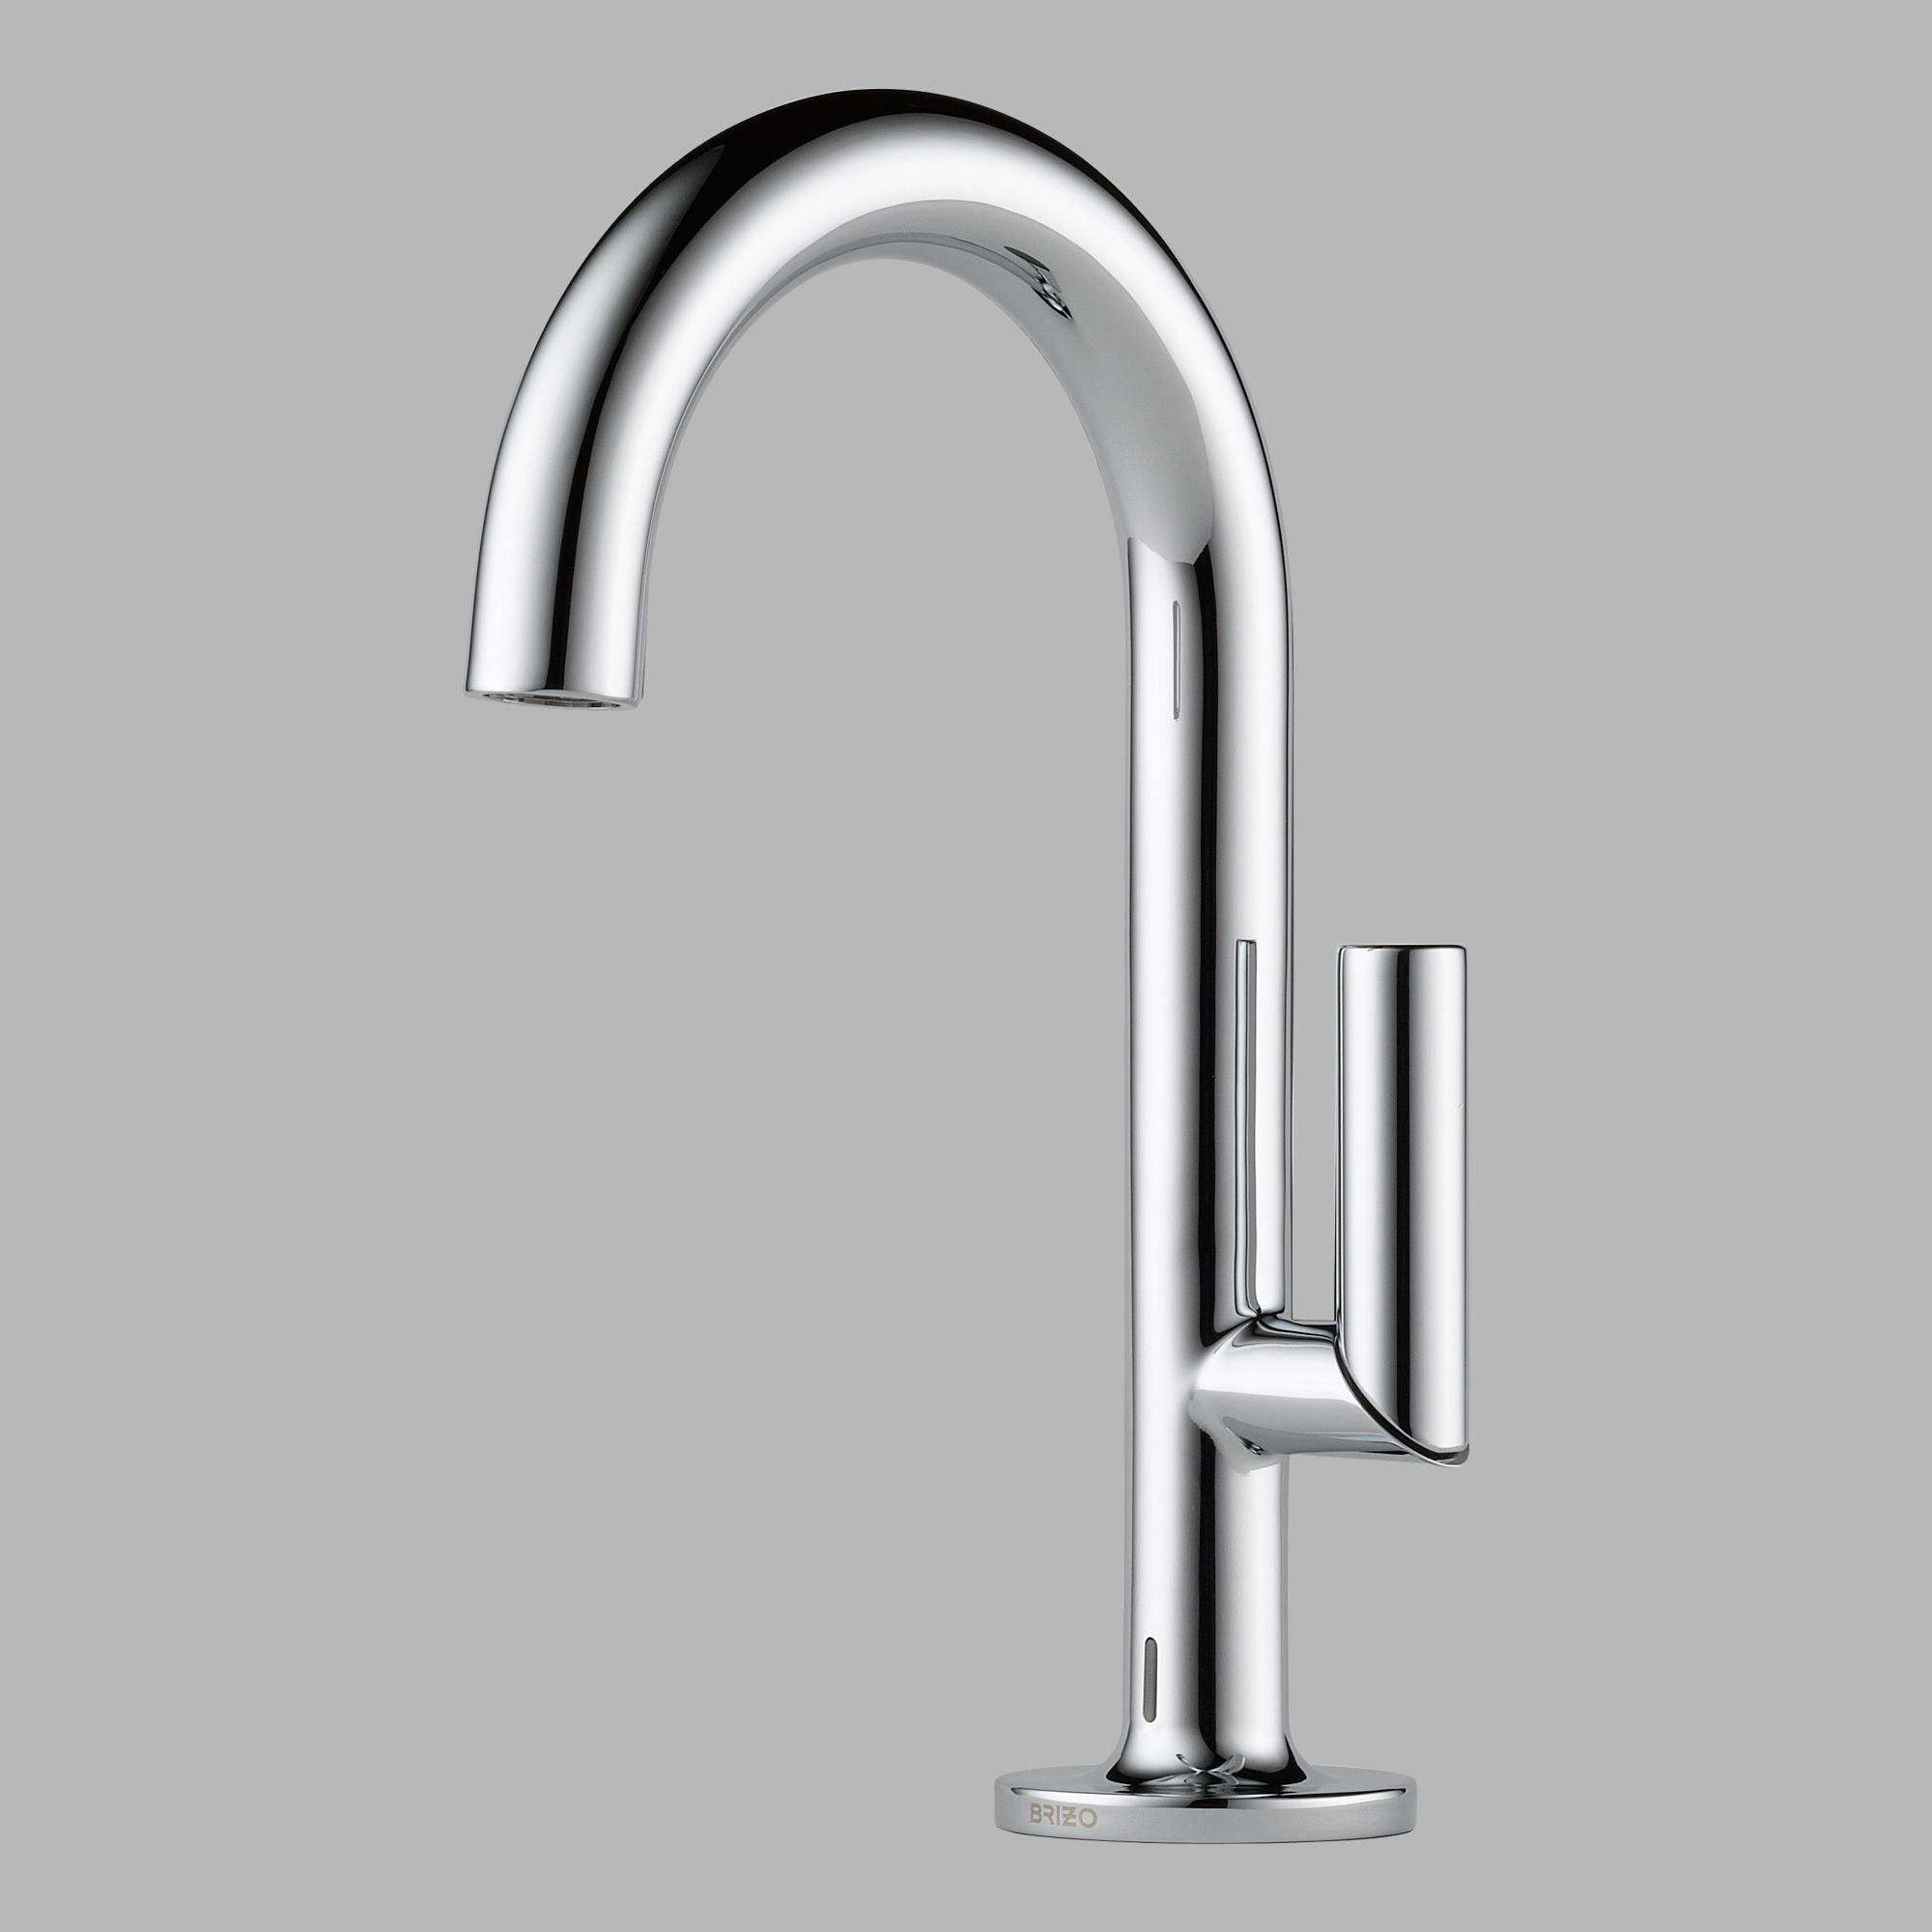 65675 Brizo Odin Single Handle Lavatory Faucet